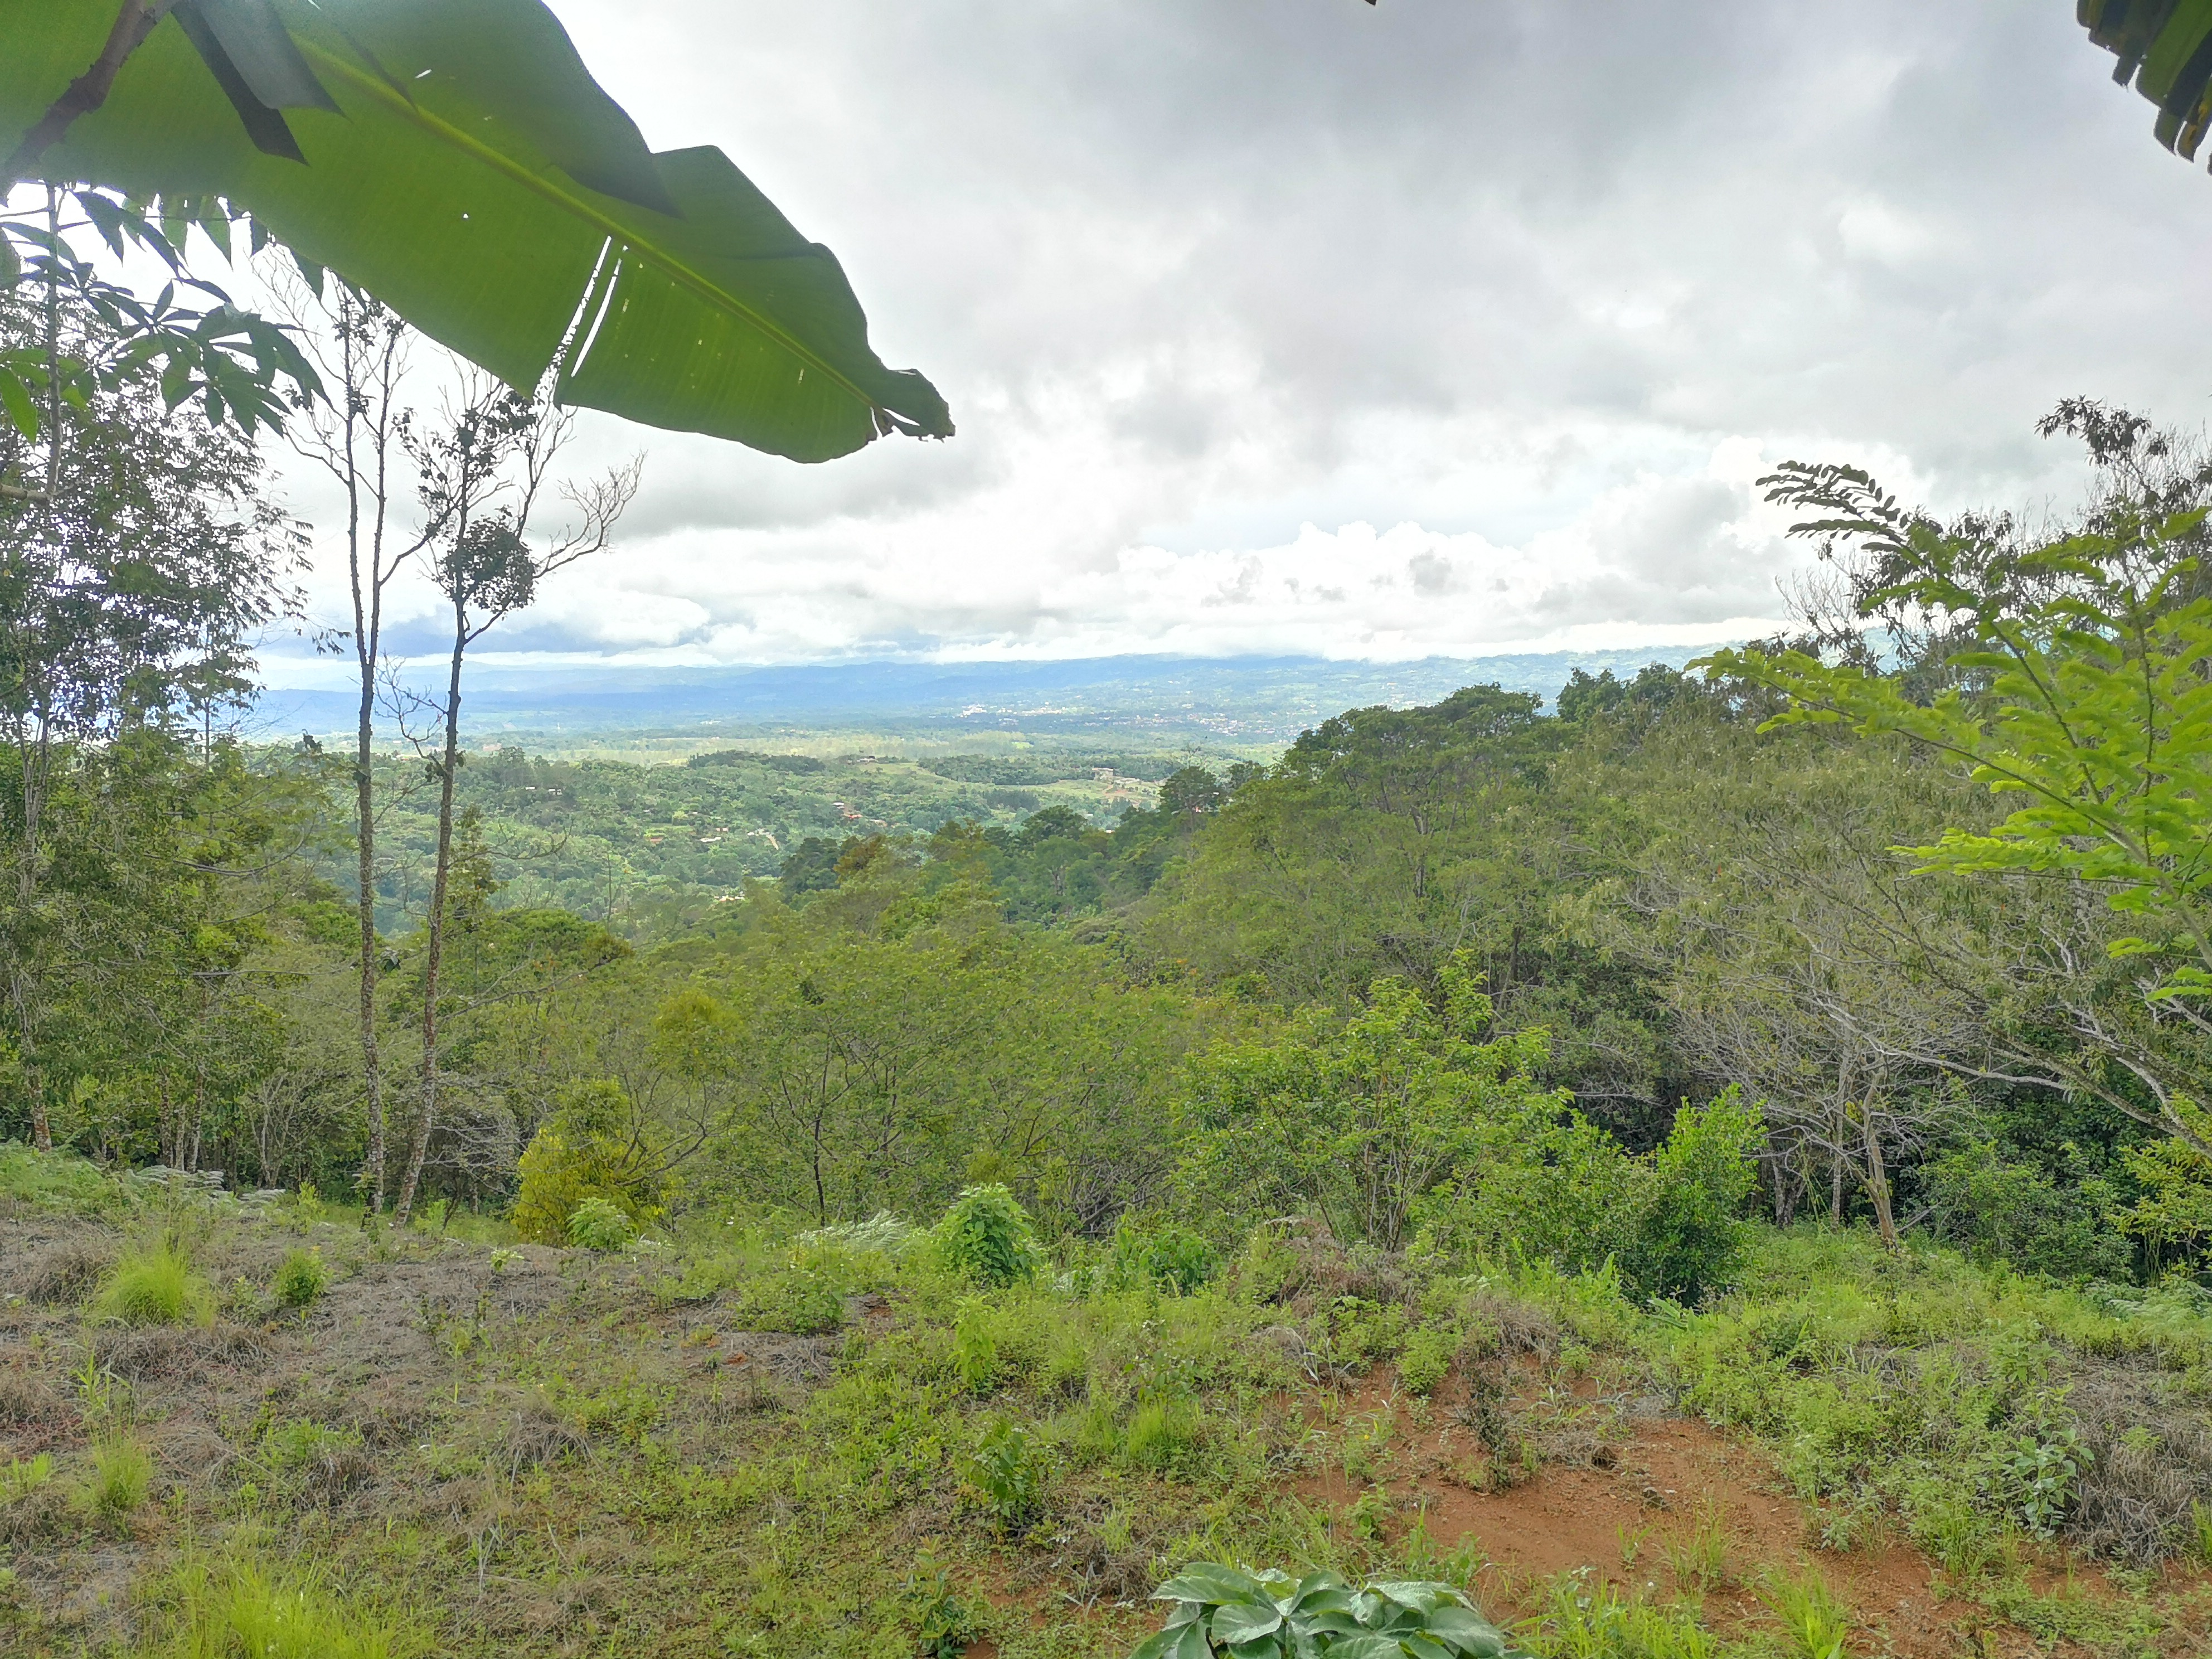 Lot with beautiful view of San Isidro in La Ese, Perez Zeledon